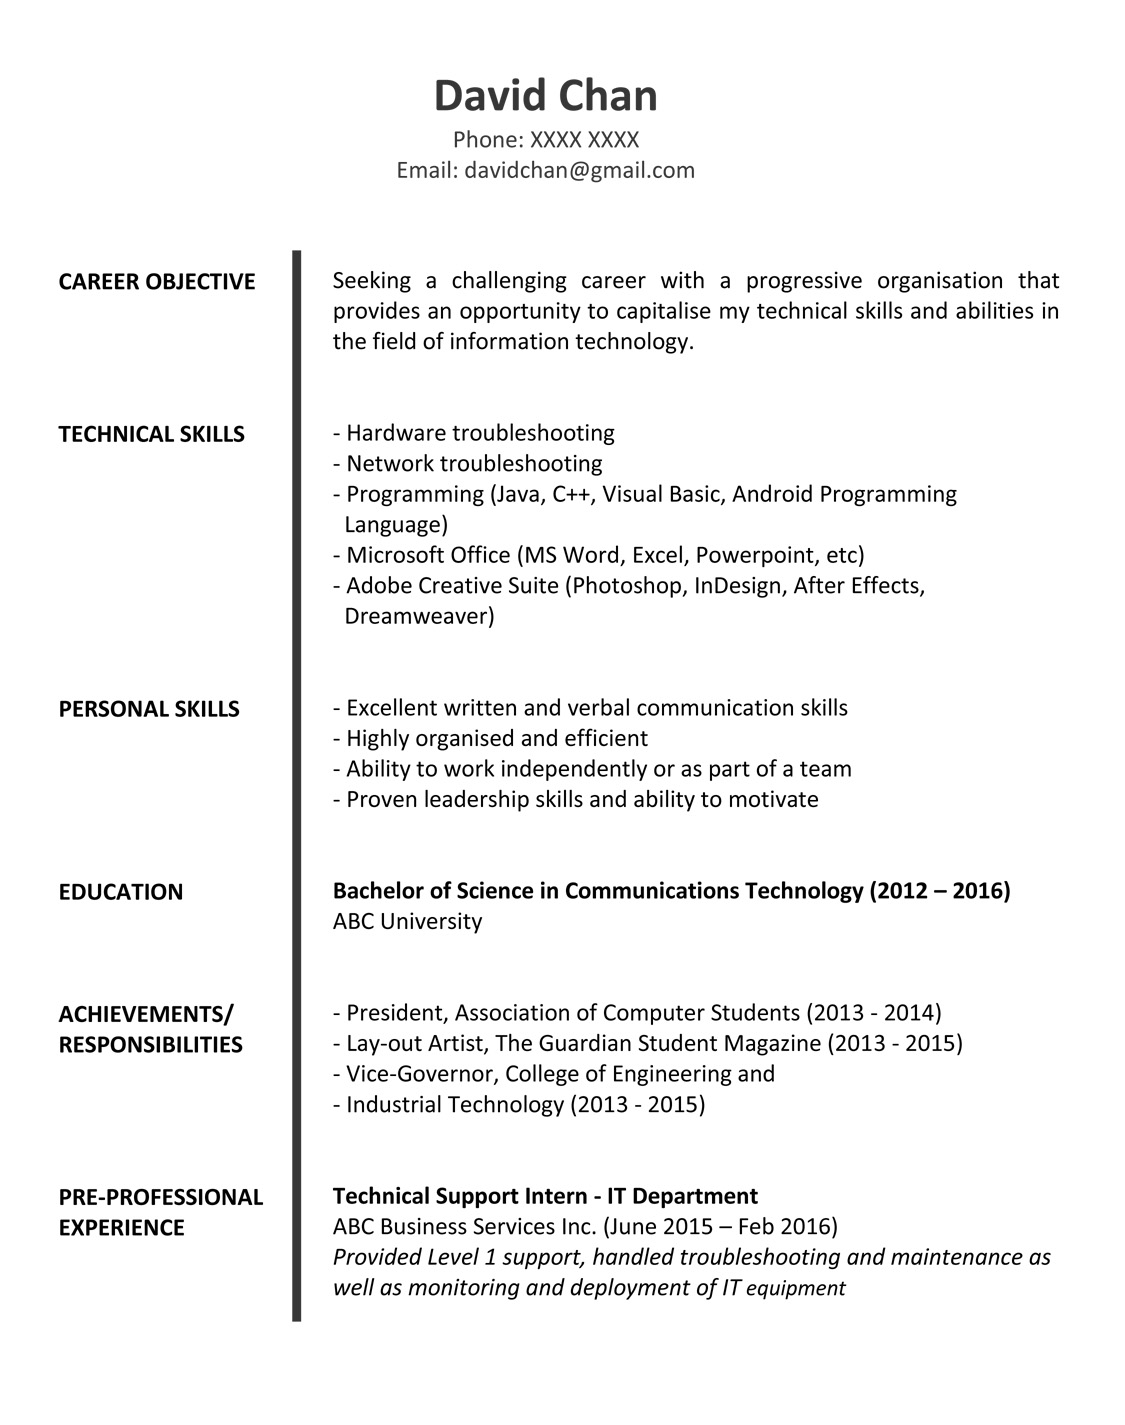 Resume examples for it professionals